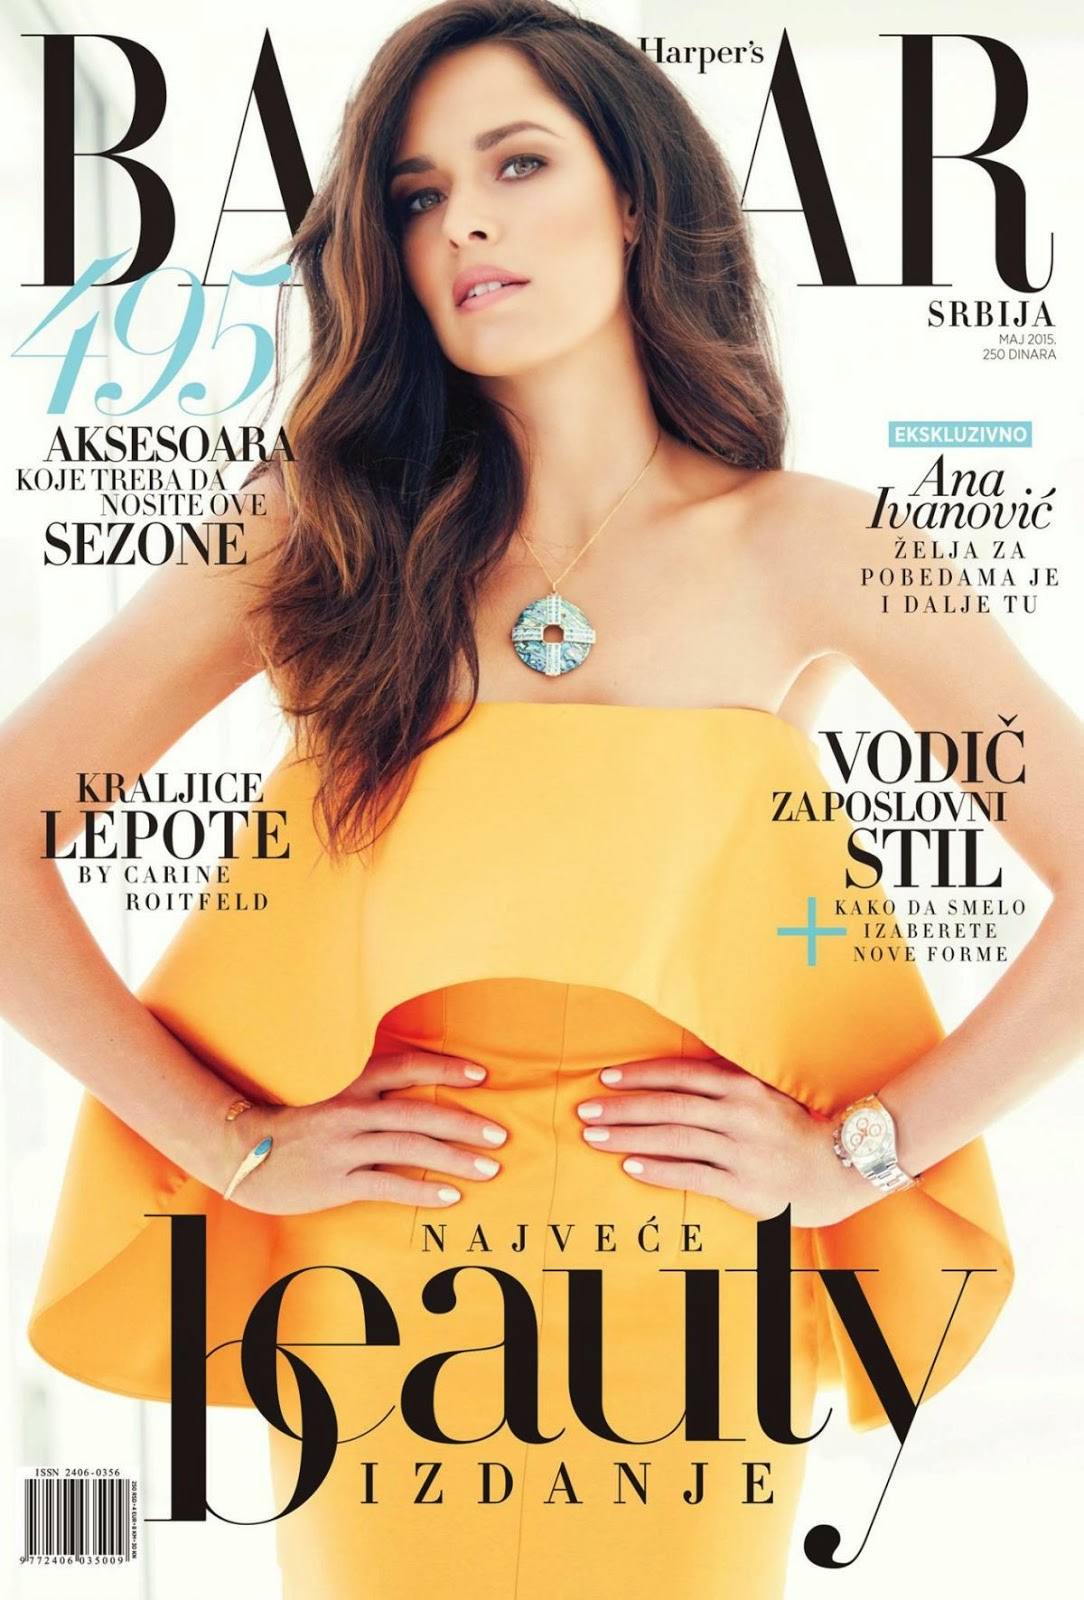 Ana Ivanovic is gorgeous for the Harper's Bazaar Serbia May 2015 cover